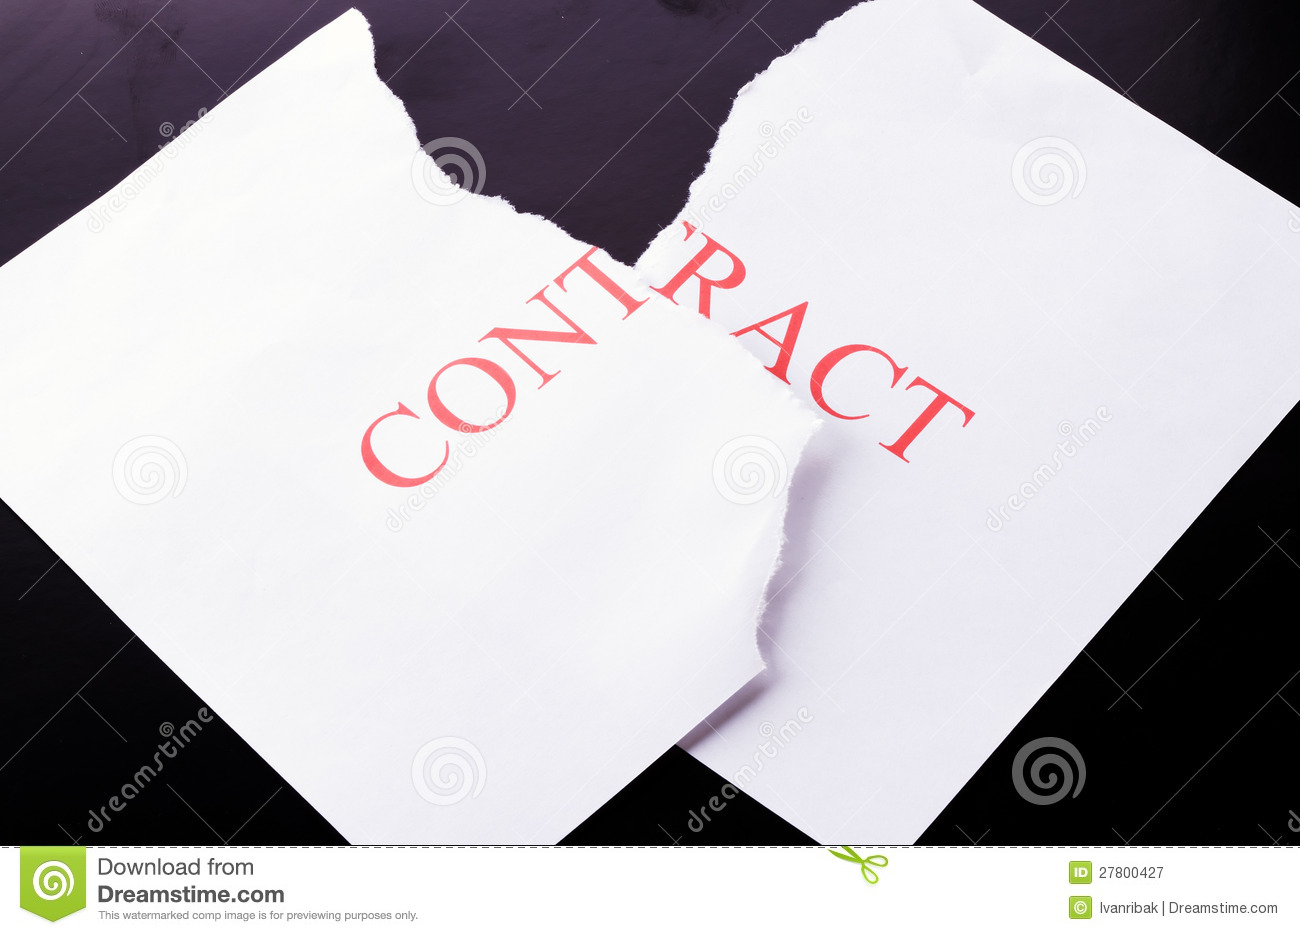 To terminate the contract